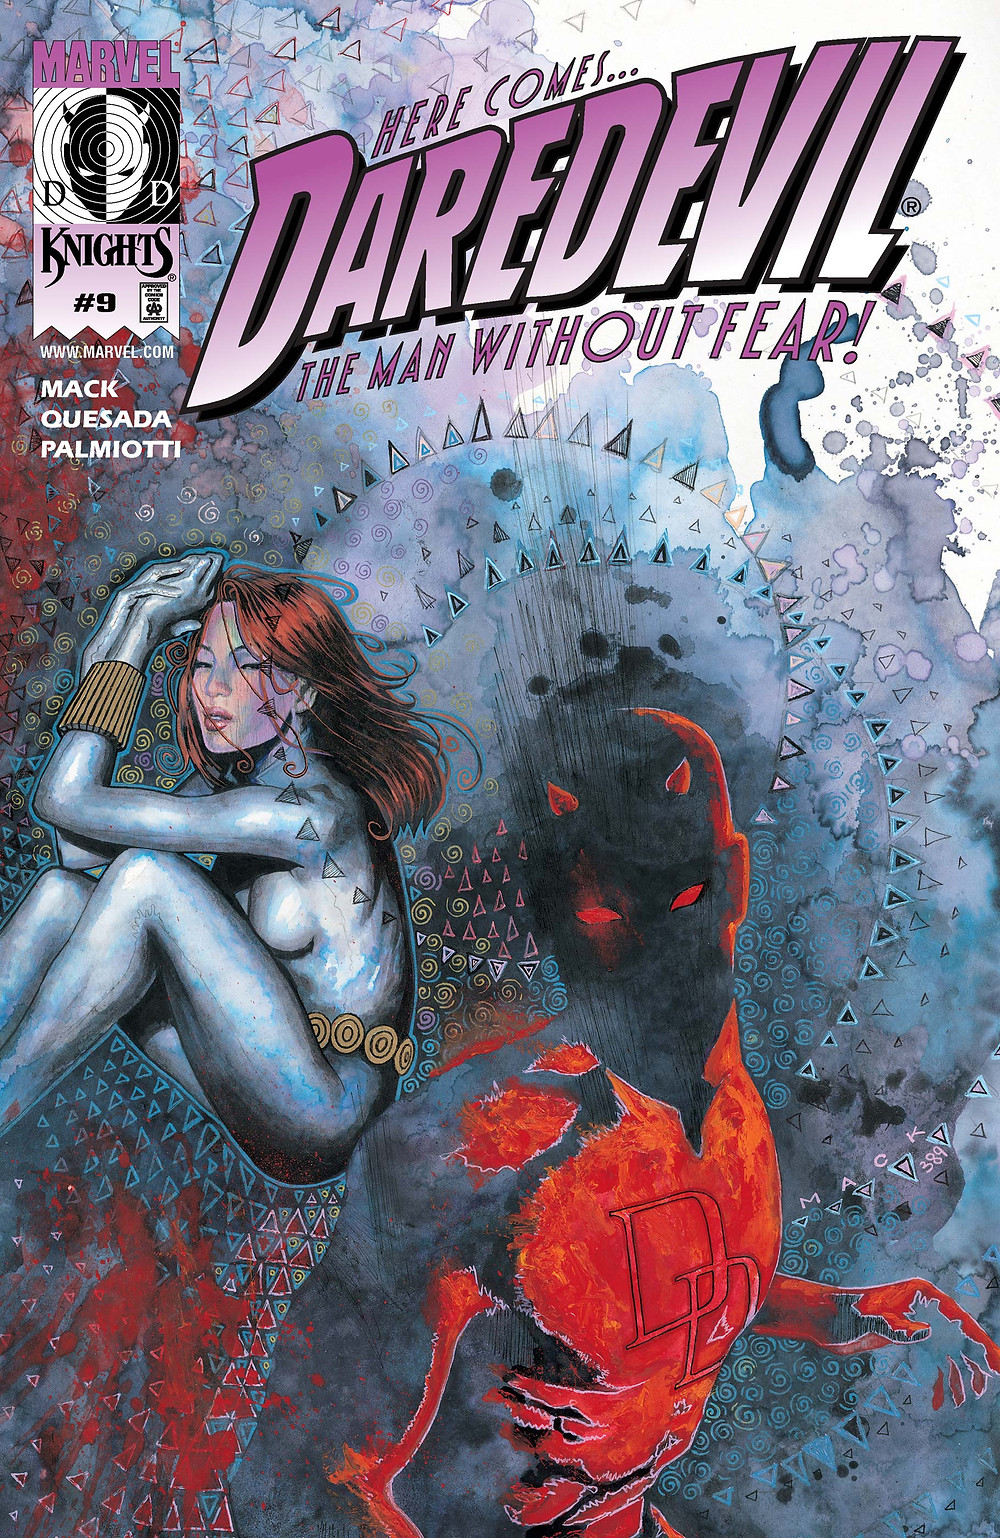 Cover of Daredevil Issue 9 (1999) written by David Mack, penciled by Joe Quesada, and inked by Jimmy Palmiotti.